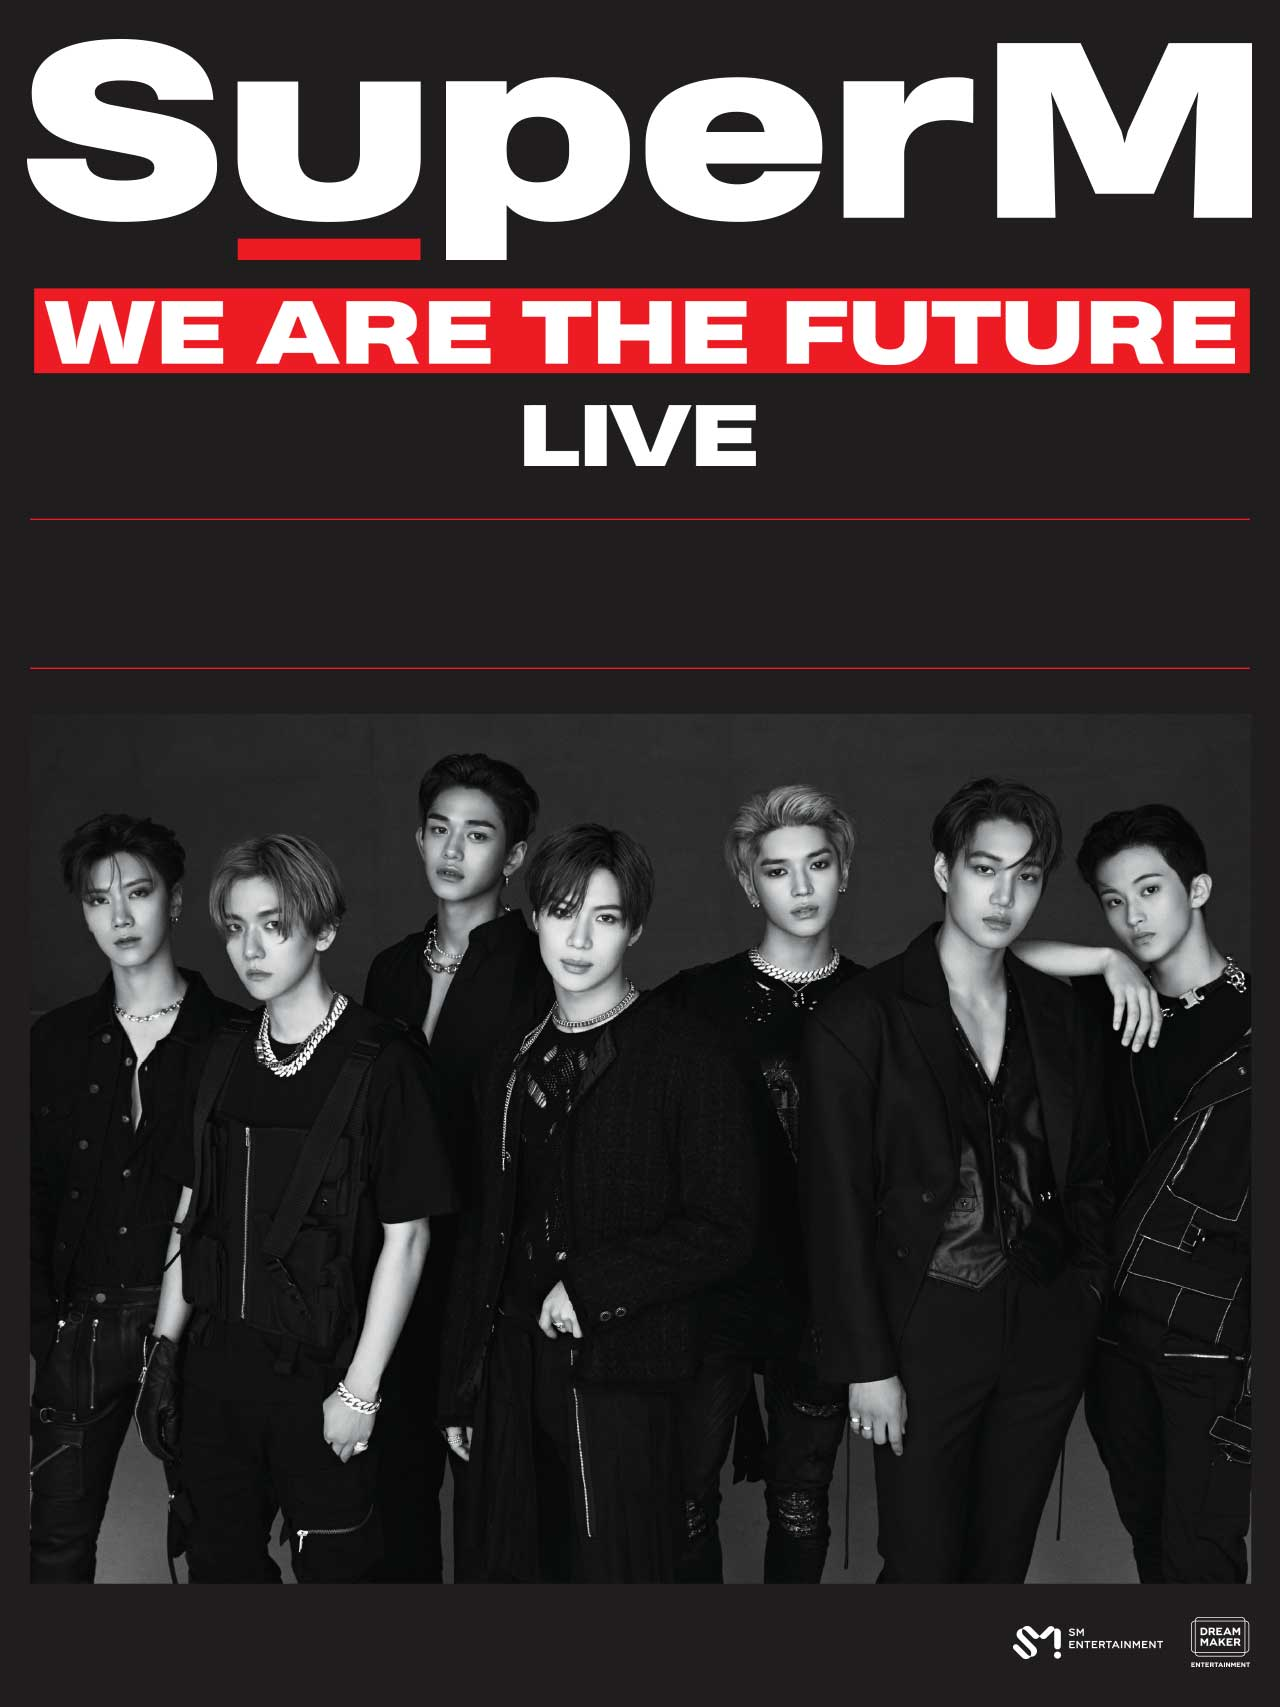 We Are The Future Live